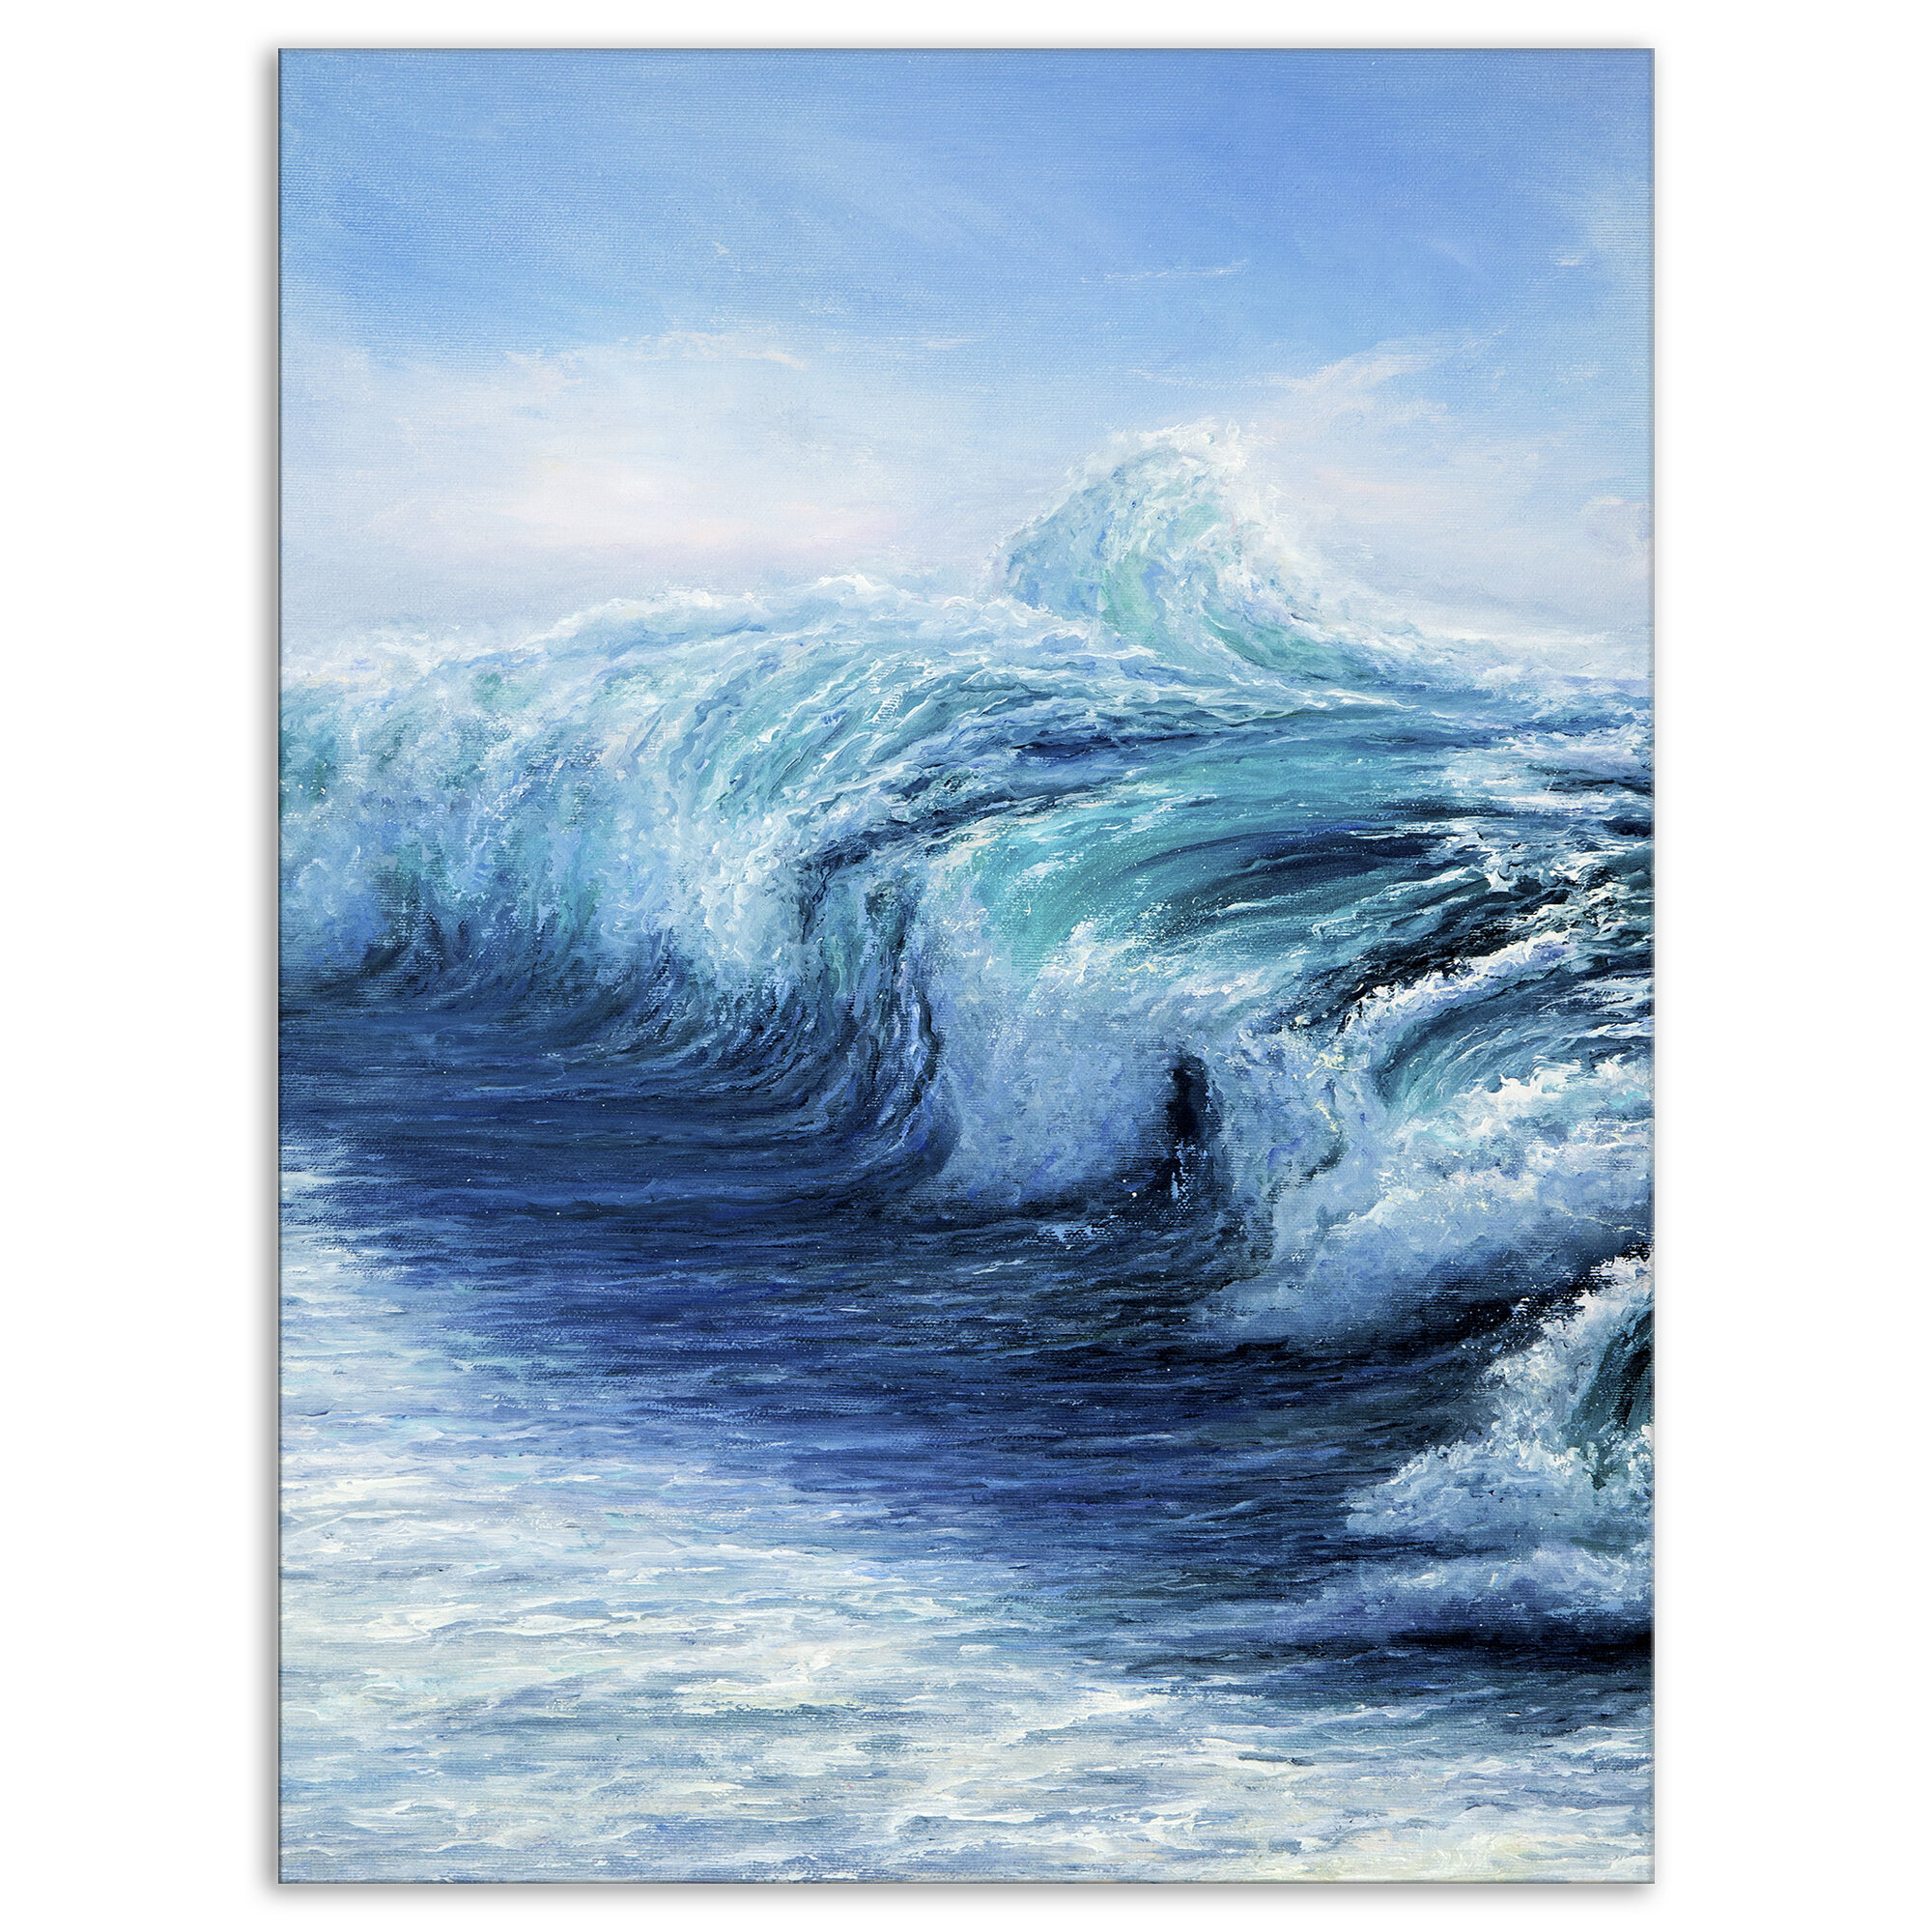 East Urban Home Strong Sea Wave Wrapped Canvas Graphic Art Print Wayfair